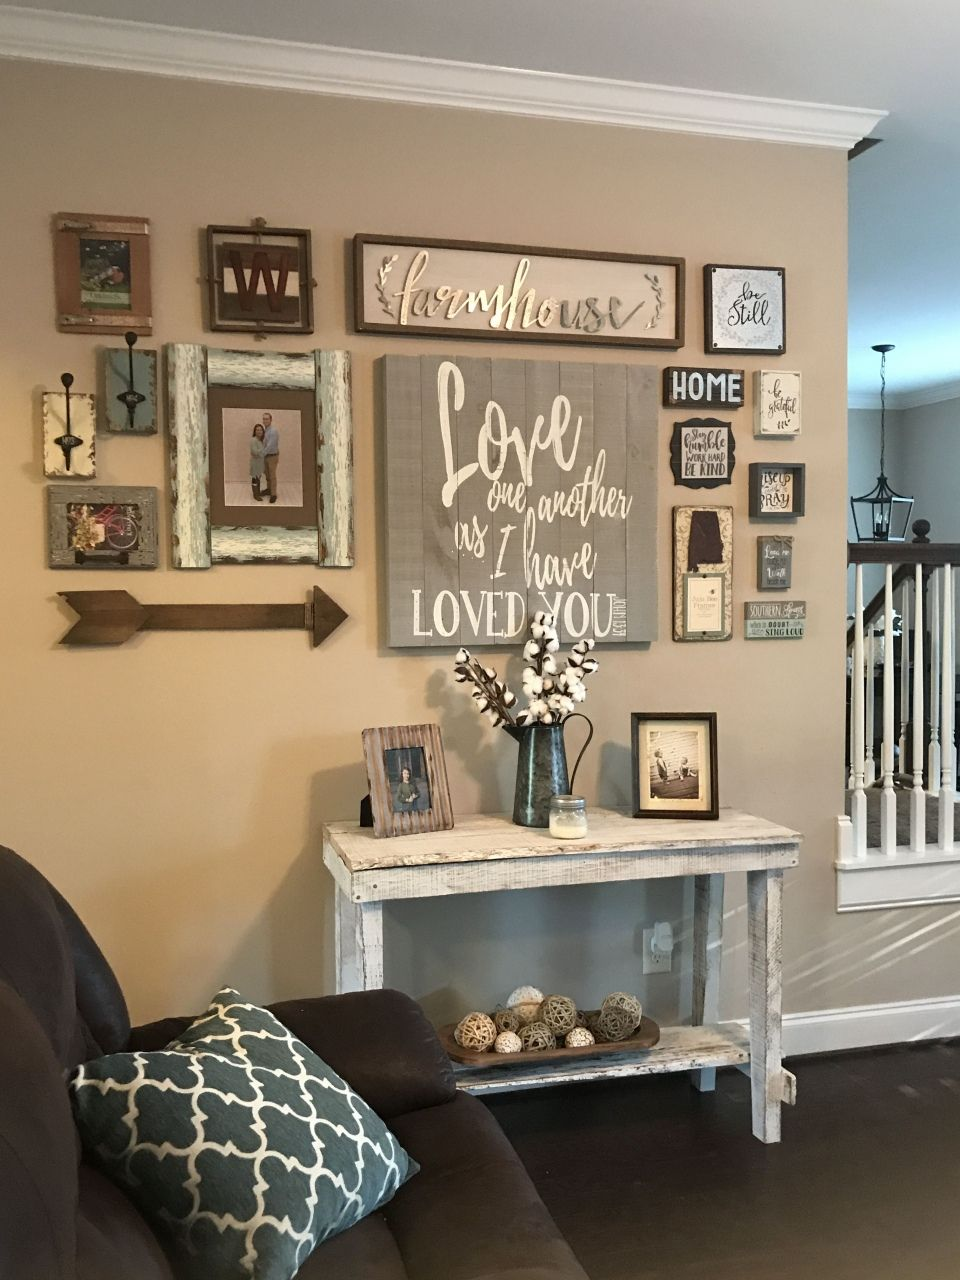 26 Best Joanna Gaines Inspired Diy Ideas Ceplukan Farm House Living Room Farmhouse Decor Living Room Room Wall Decor